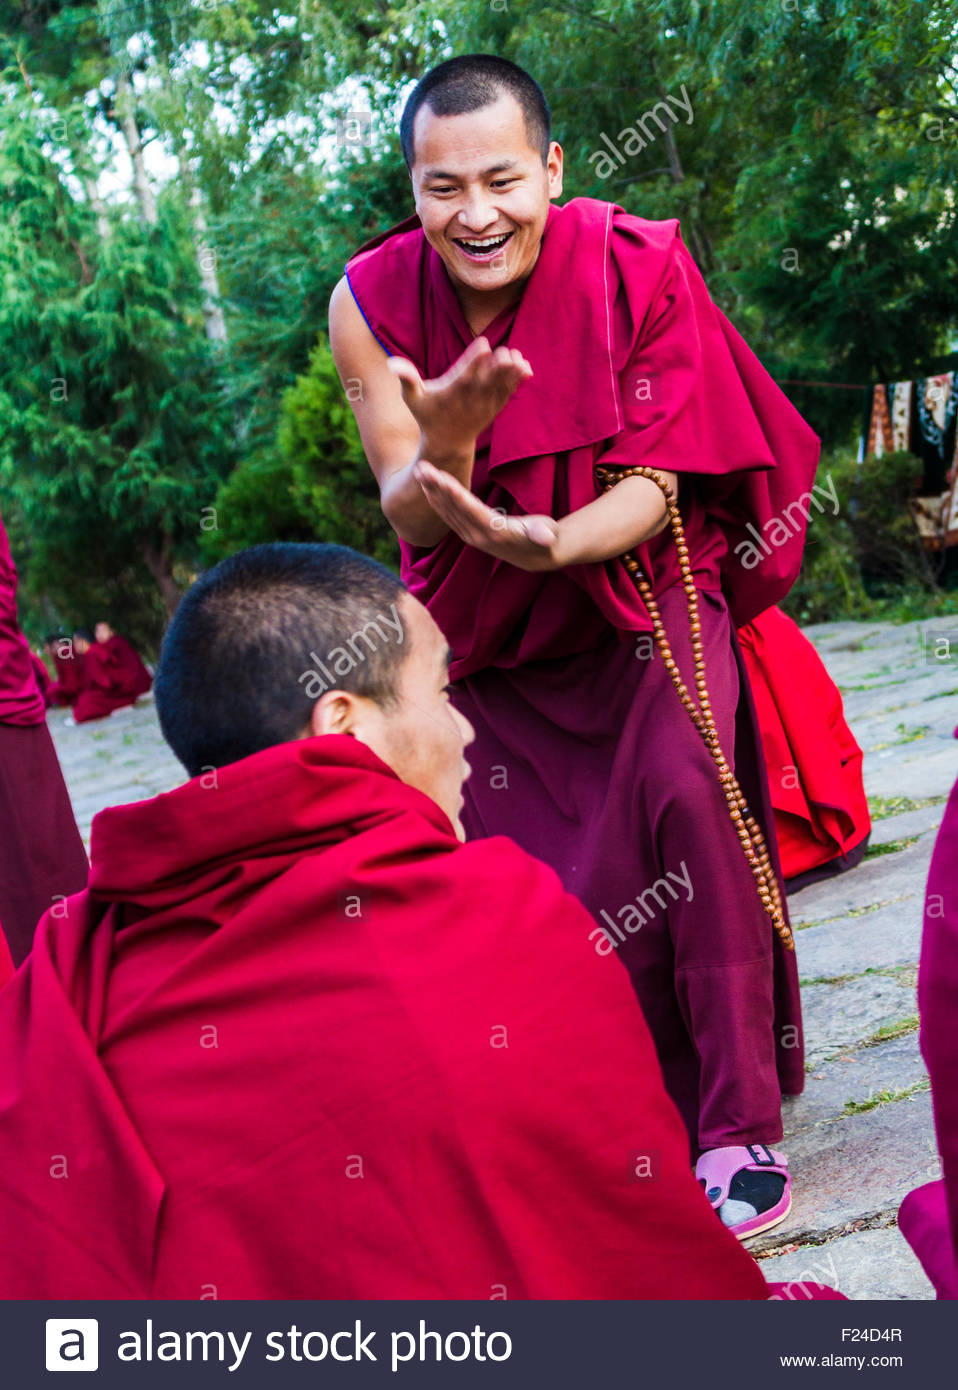 Bhutanese Buddhist monks engage in philosophical debates in the courtyard of a monastery in Bumthang, Bhutan - Stock Image